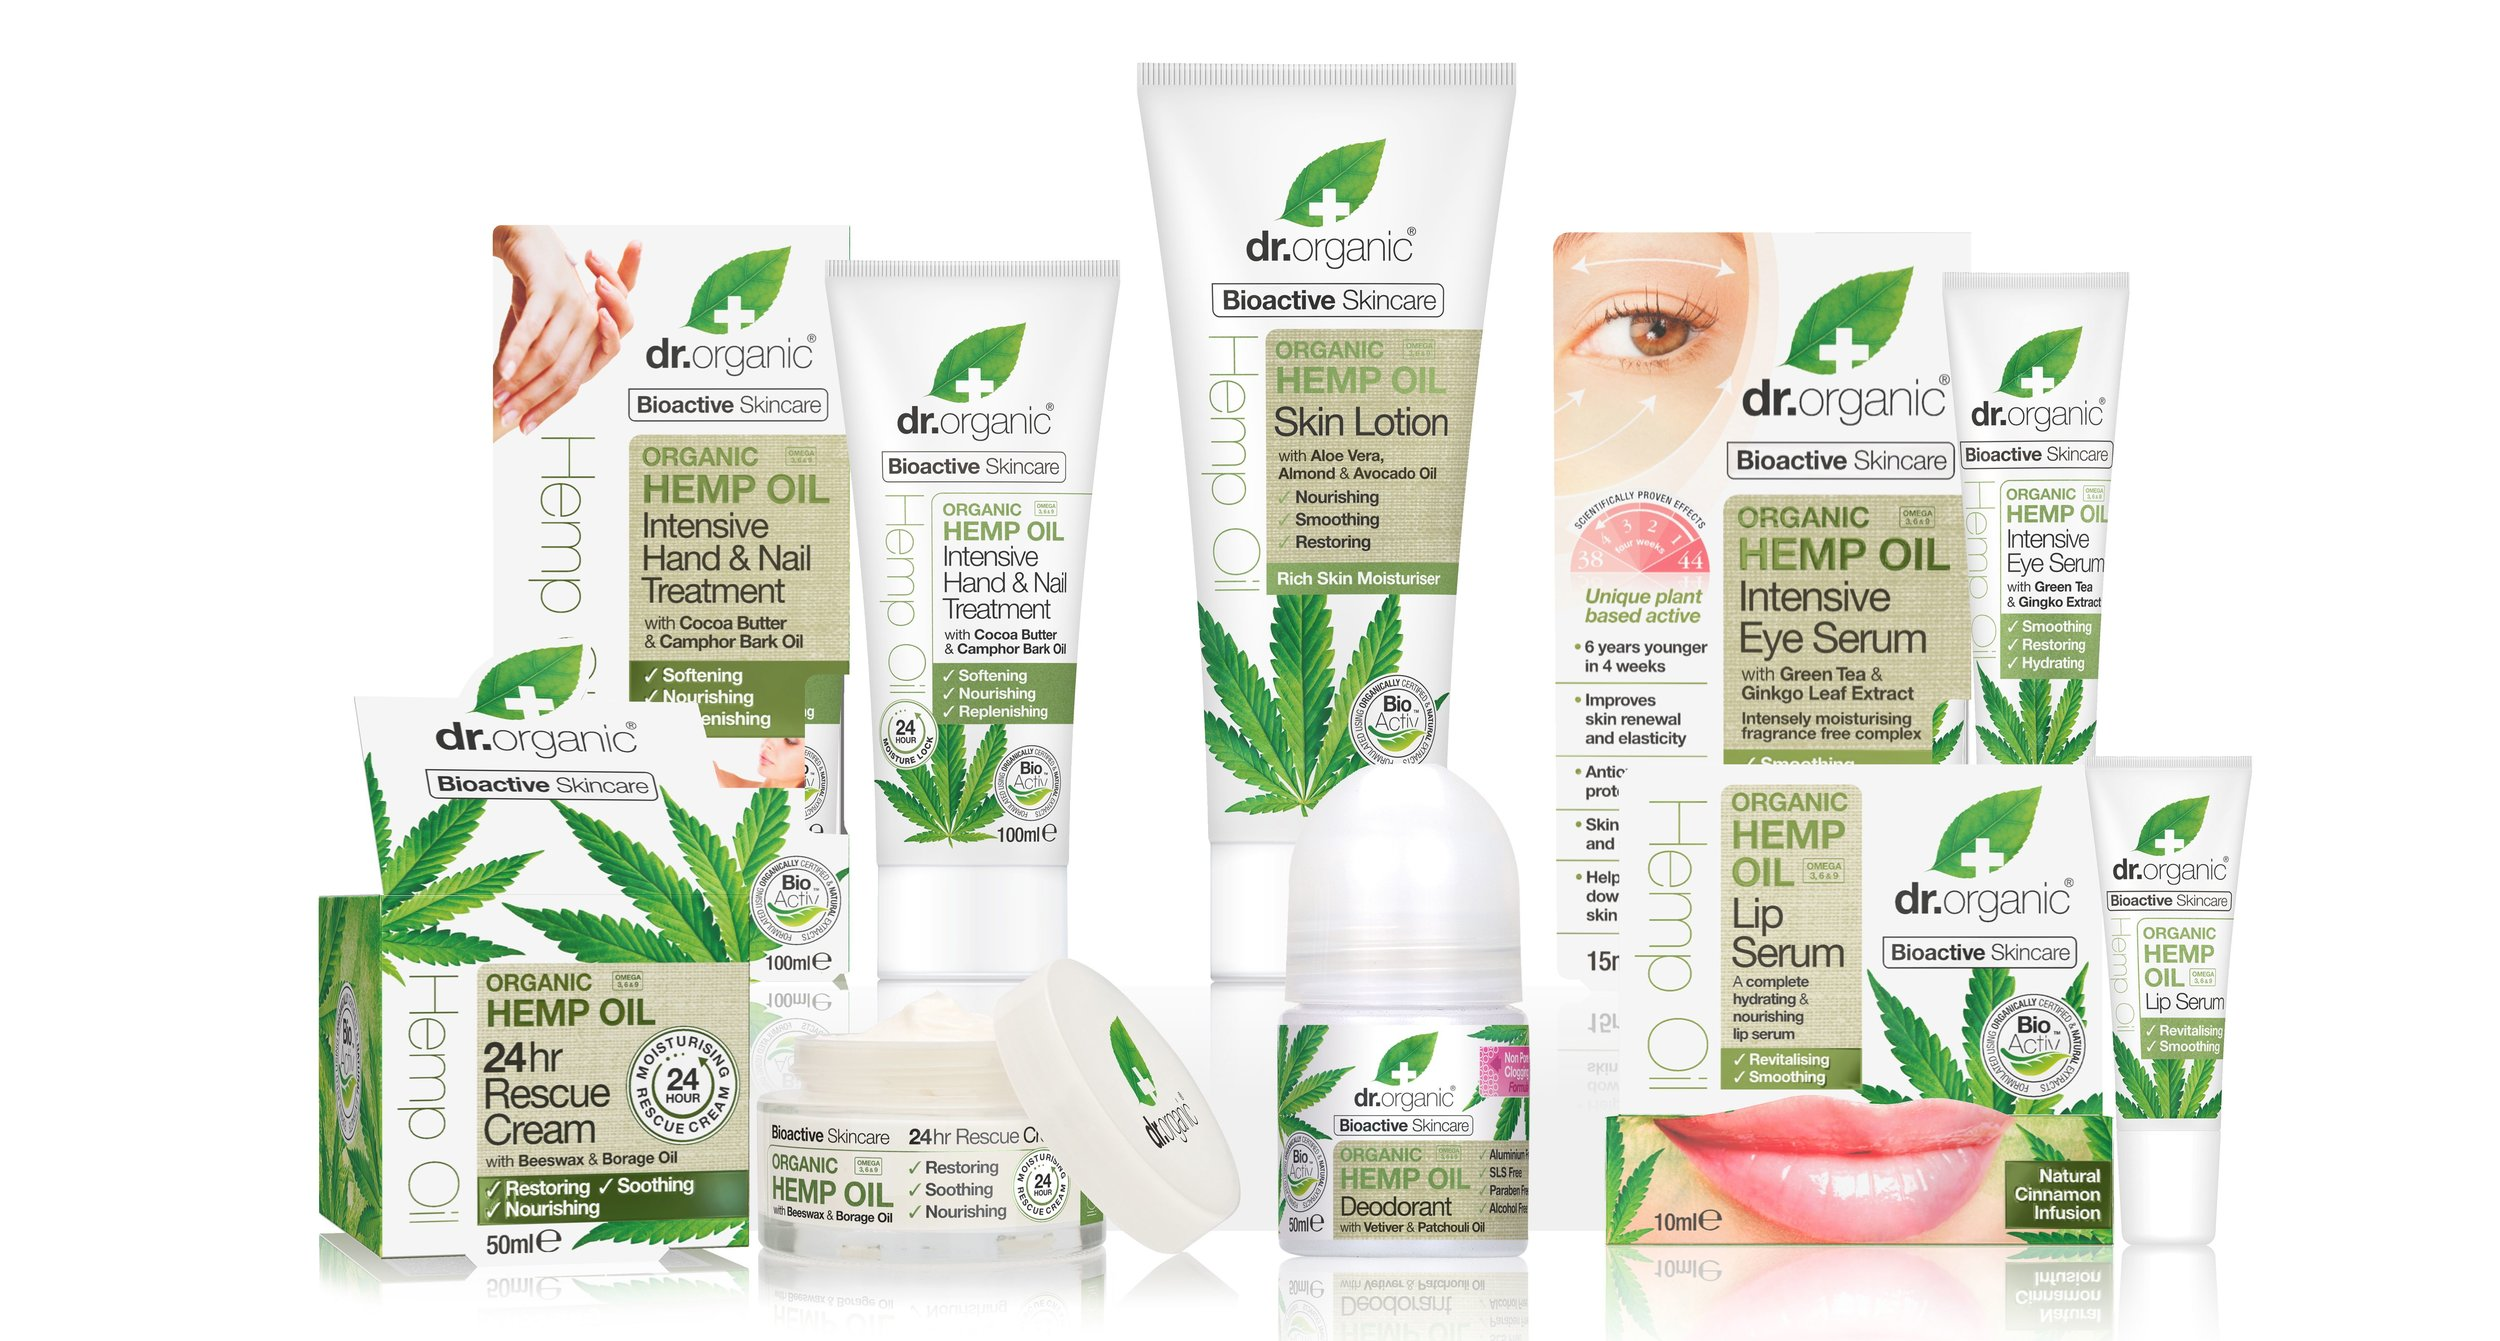 dr organic vegan products